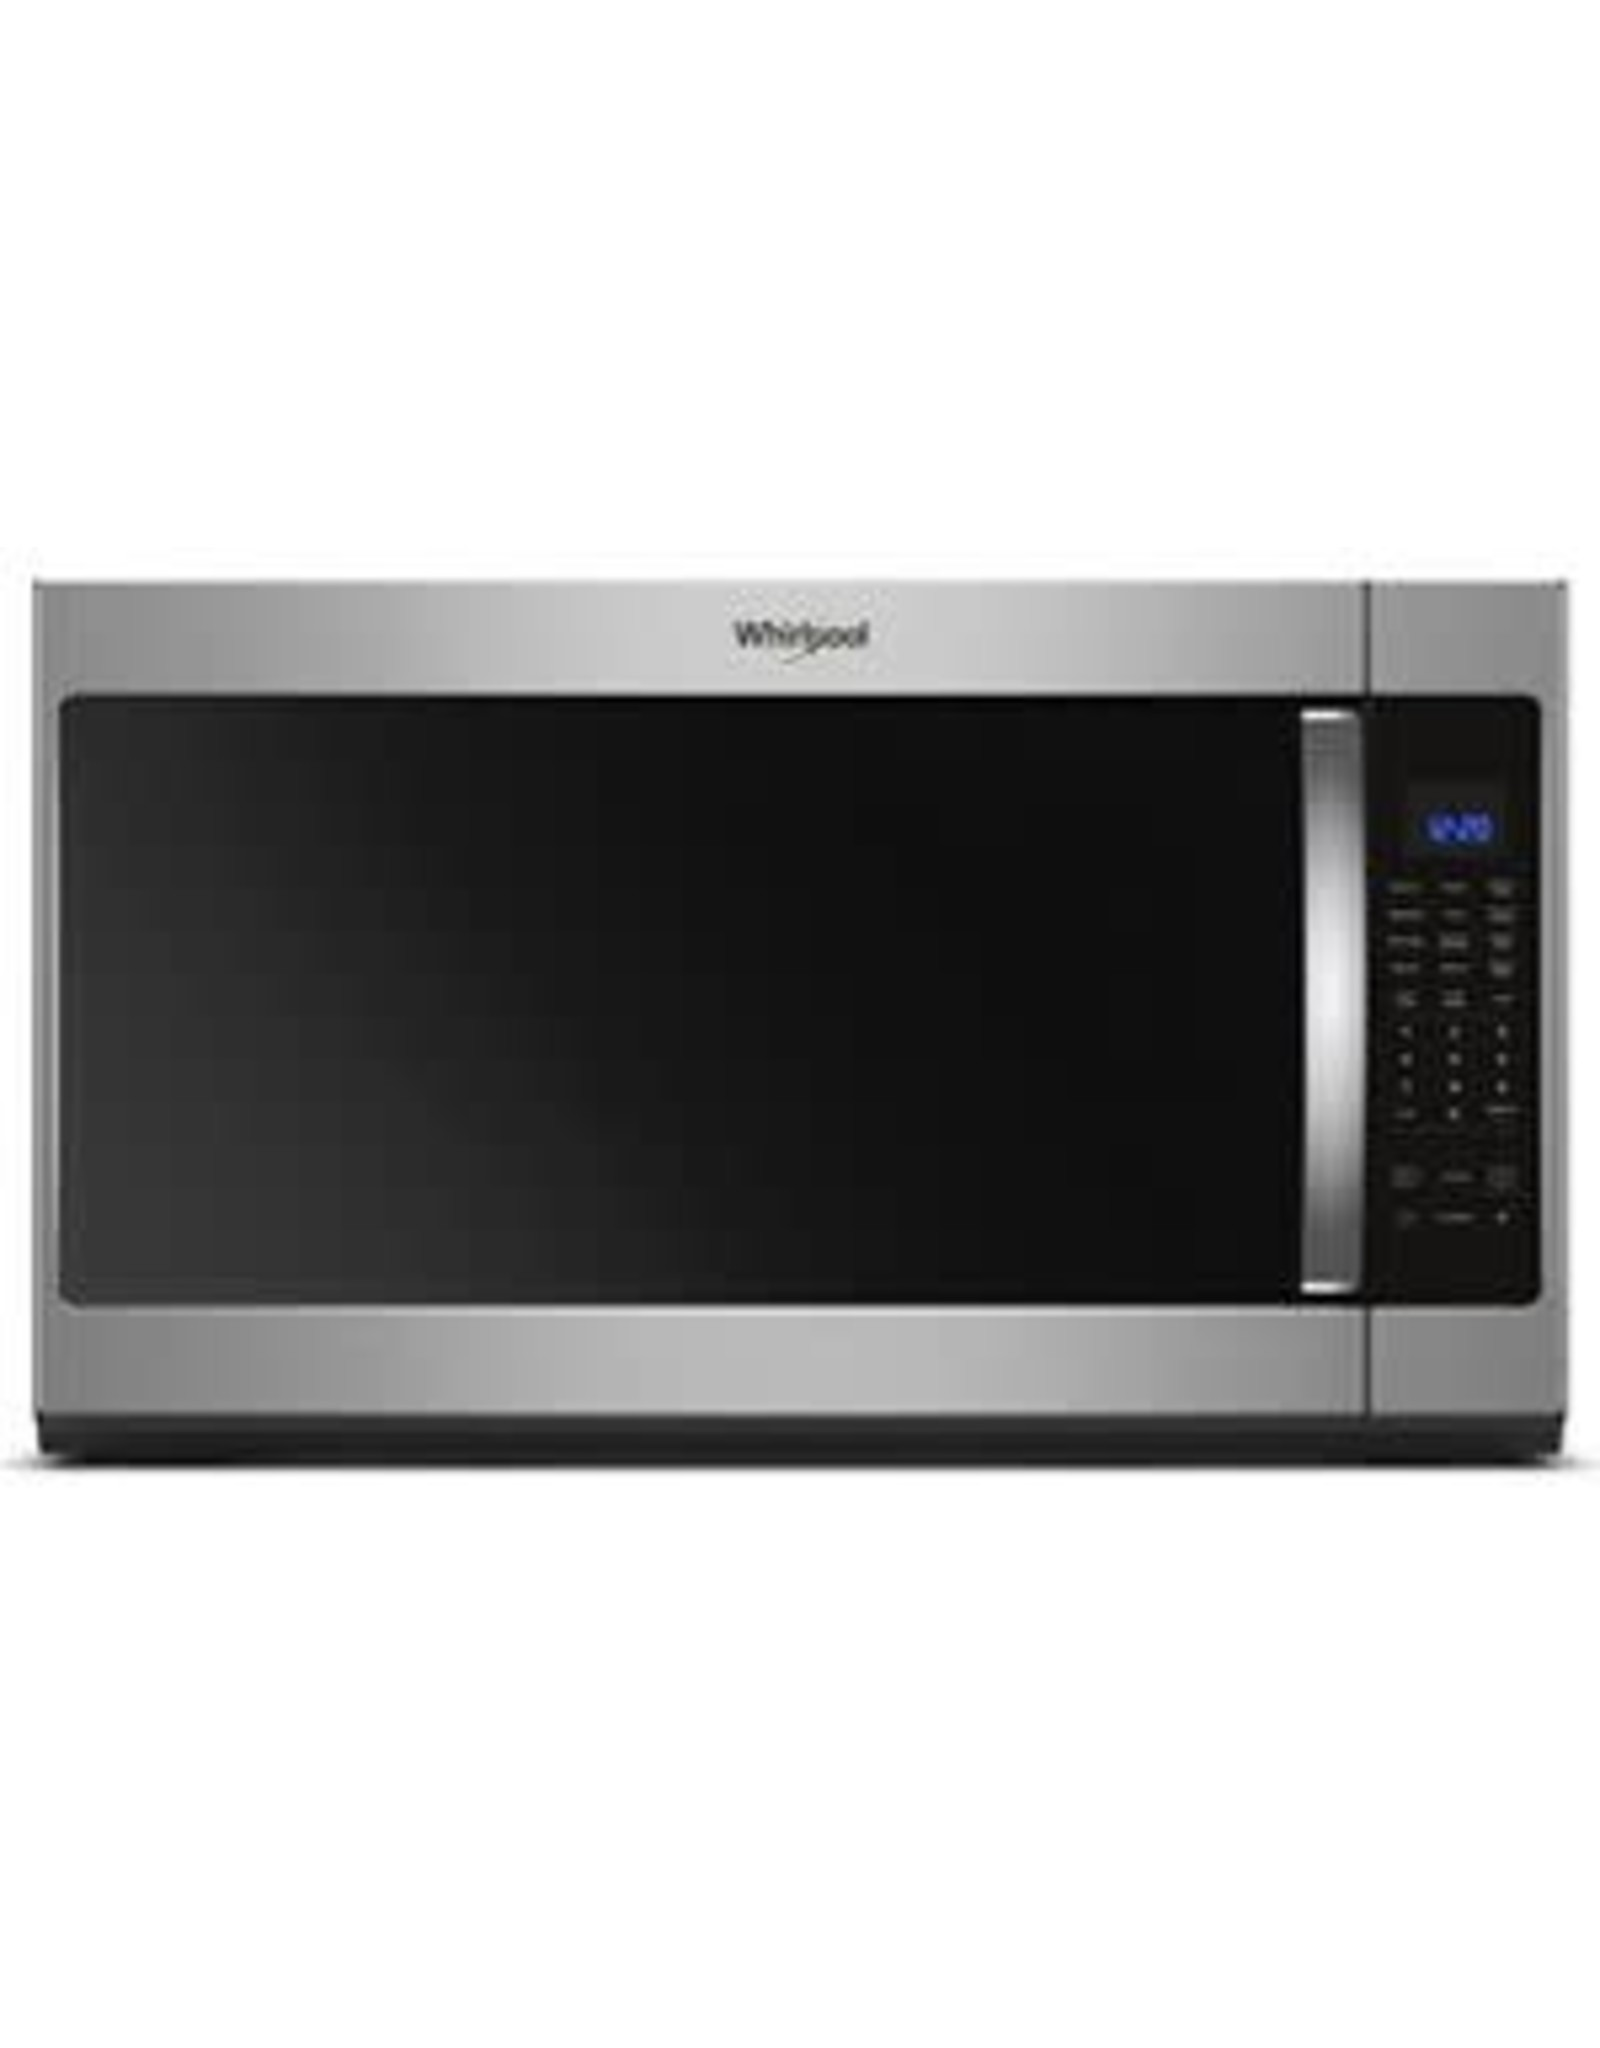 WMH53521HZ WHR Microwave, Hood, Combination - 2.1 CU FT, 1000 WATTS, 2 PIECE FRONT, CL